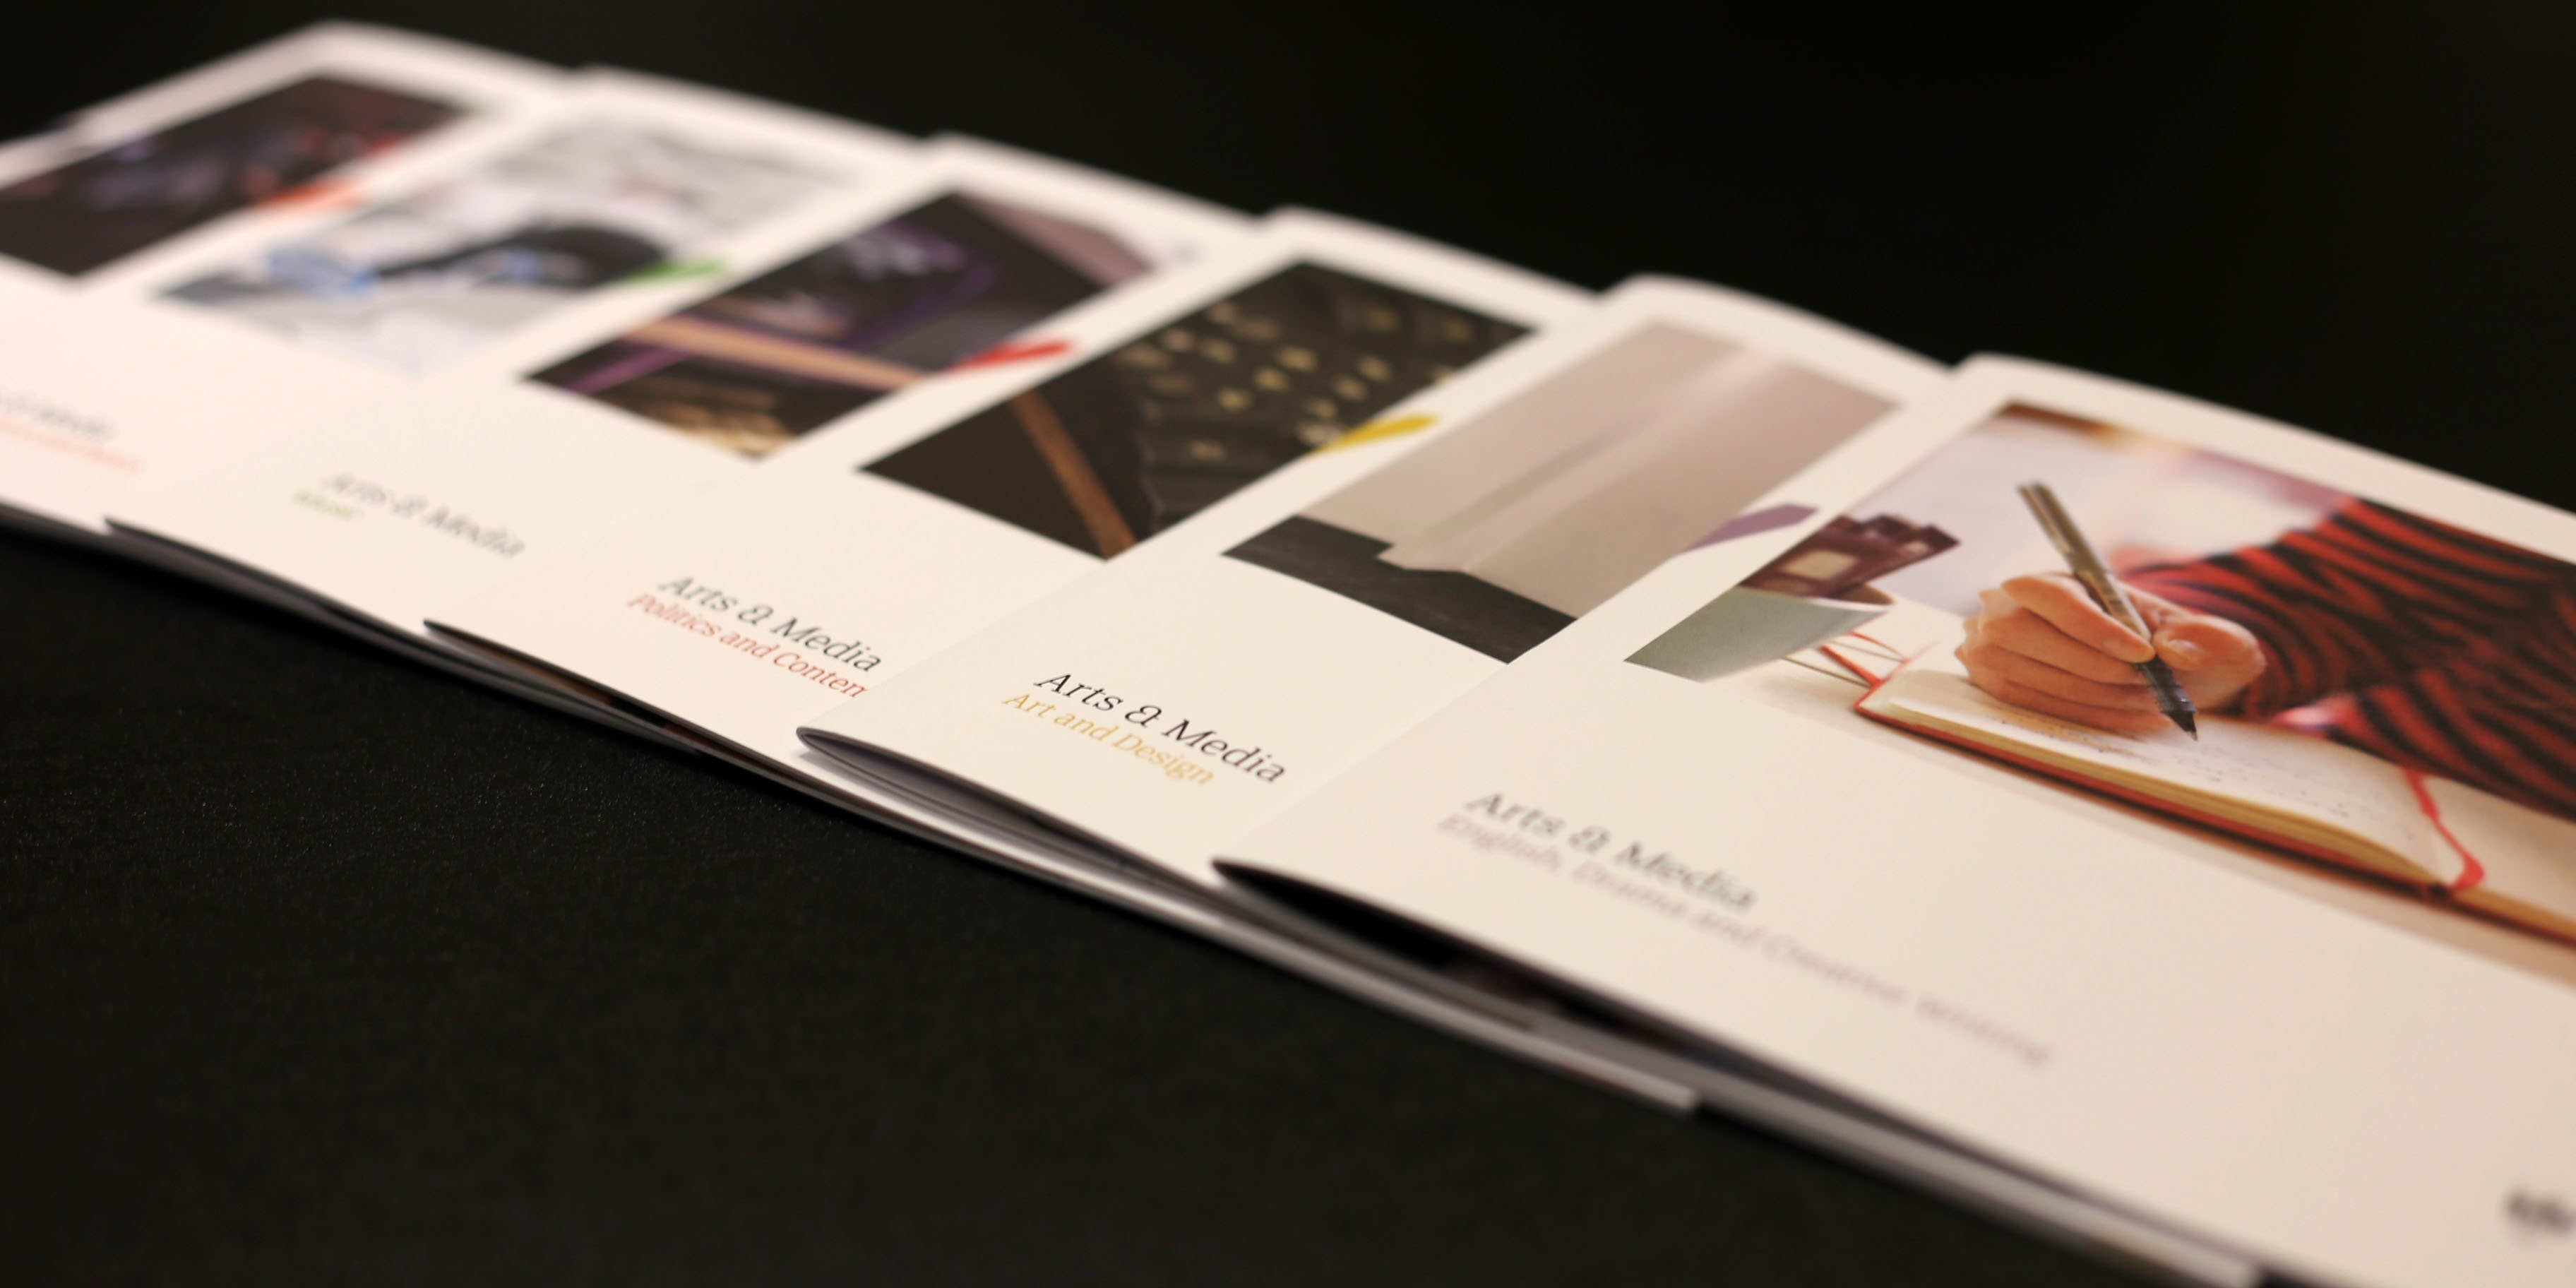 brochures on table printed on luxury printing paper